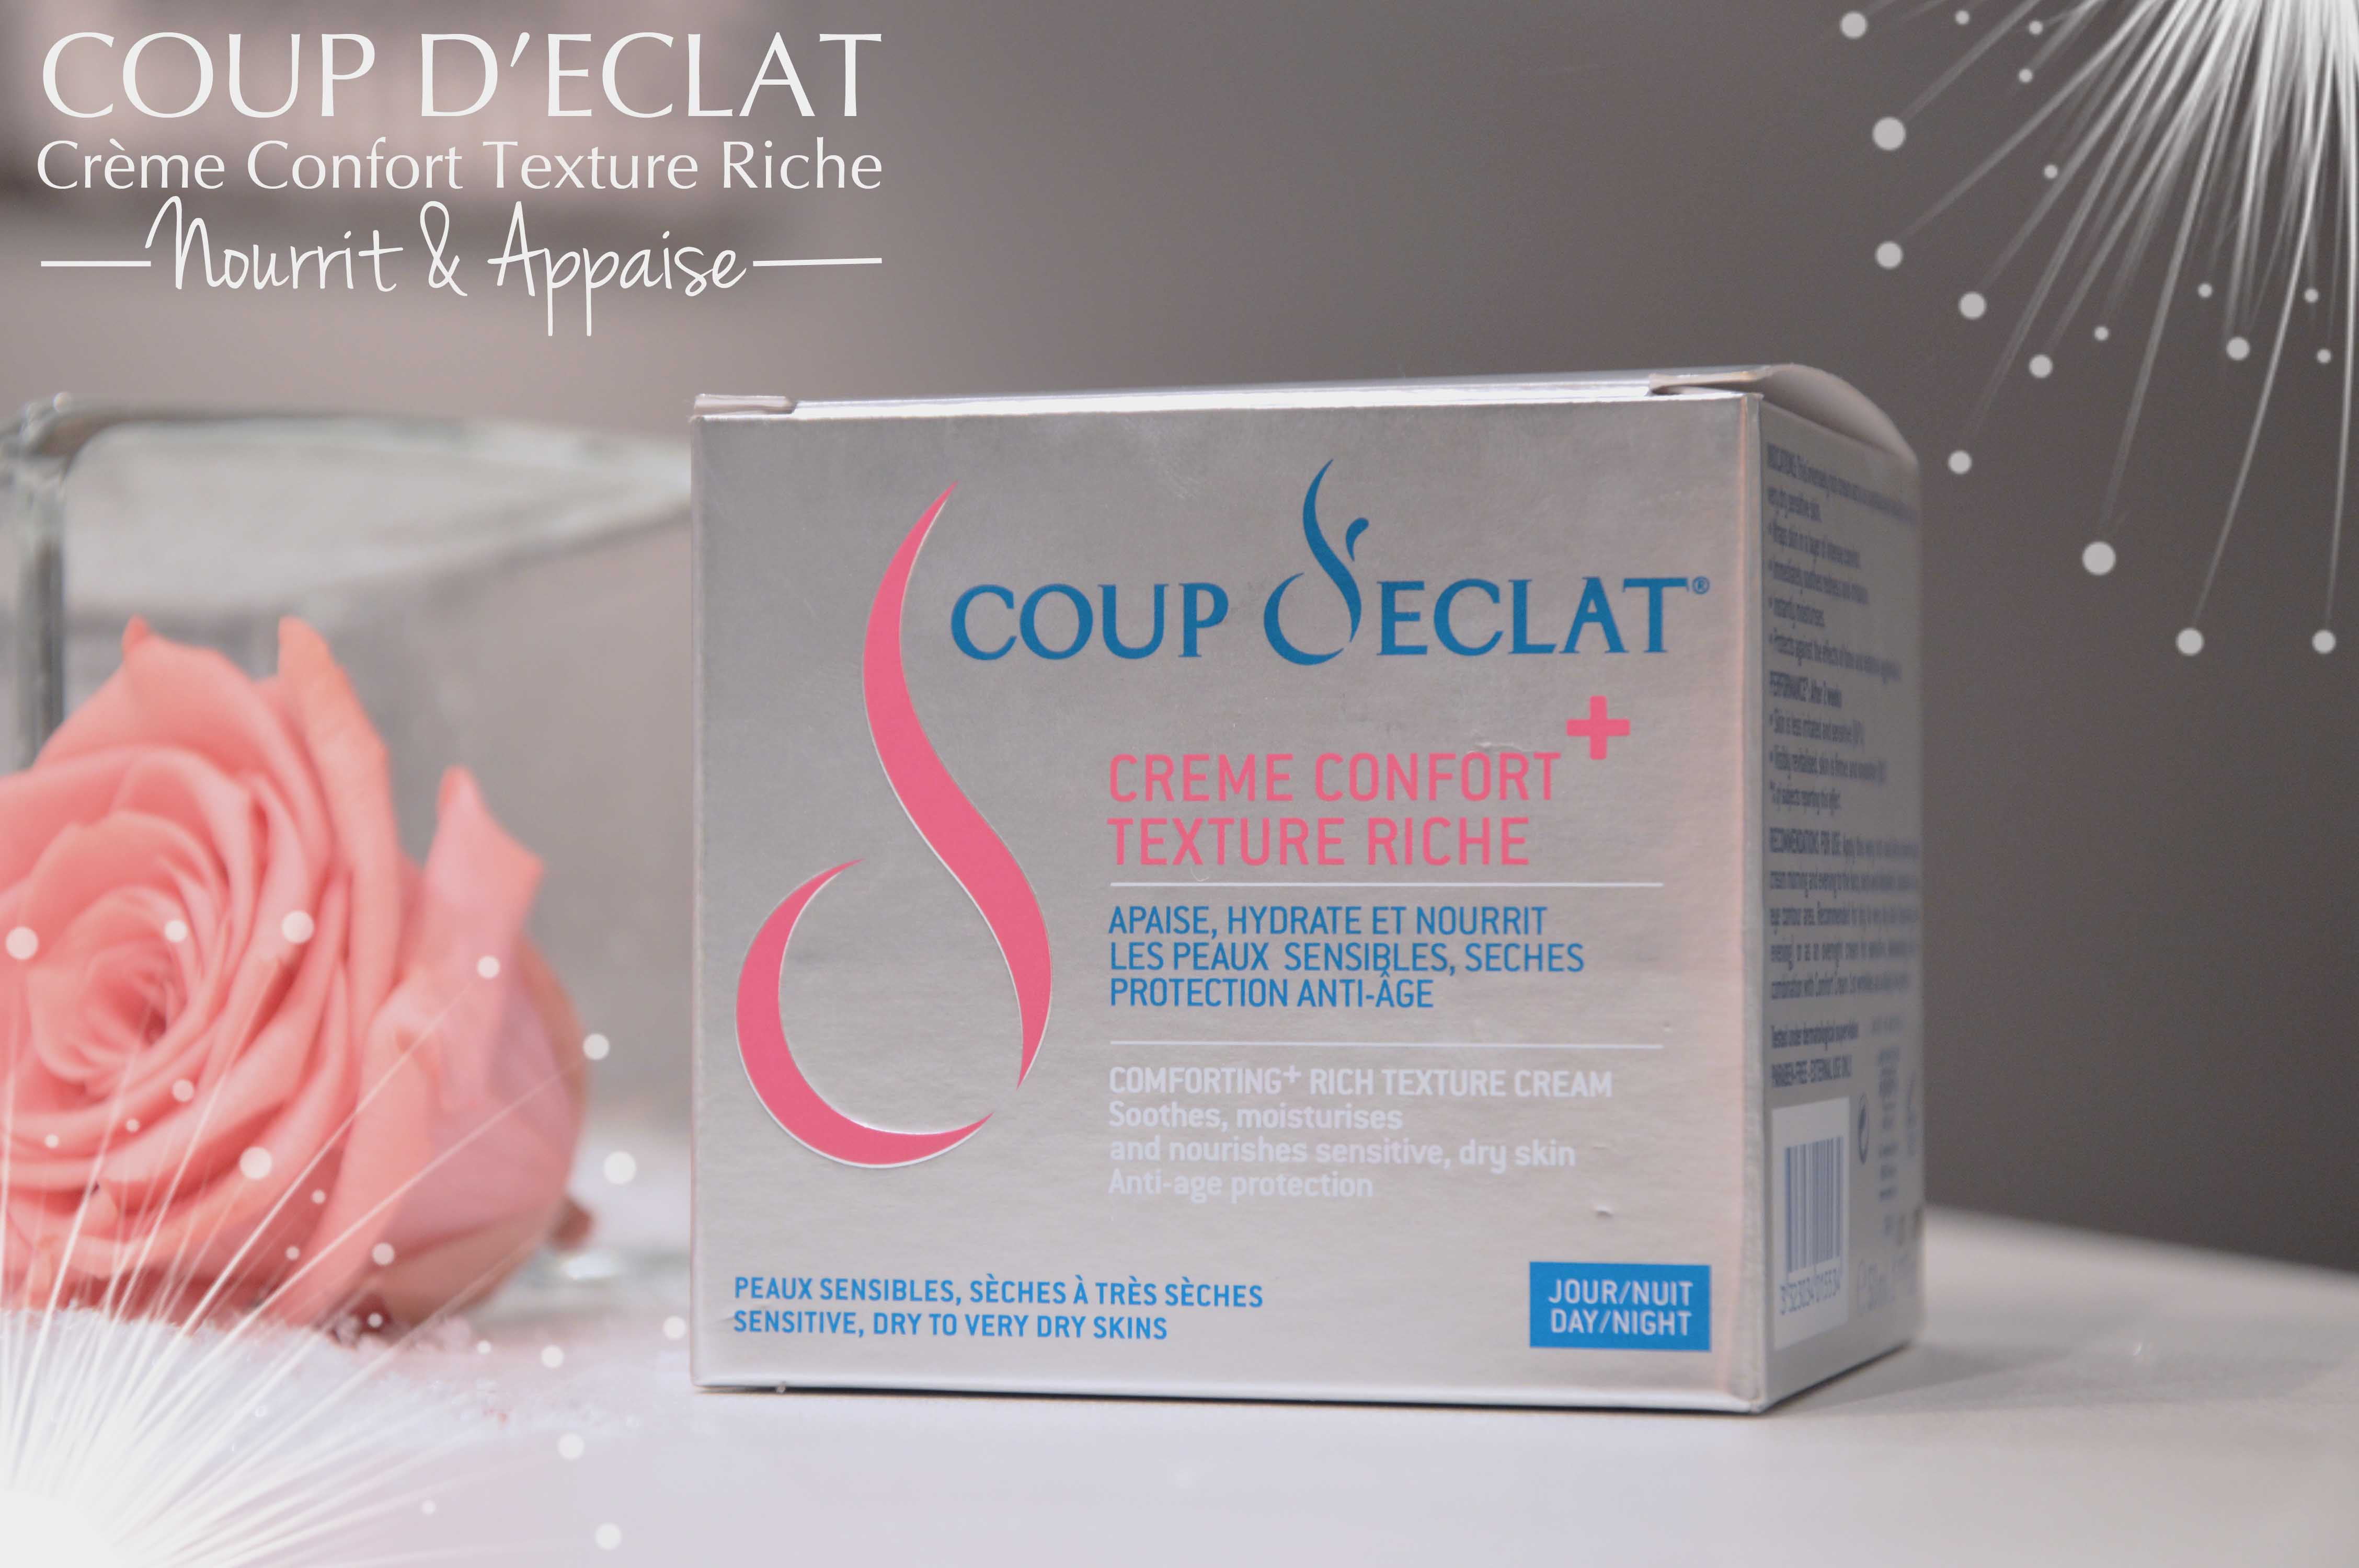 ALITTLEB_BLOG_BEAUTE_SOIN_COCOONING_COUP_DECLAT_CREME_CONFORT_EXTRA_RICHE